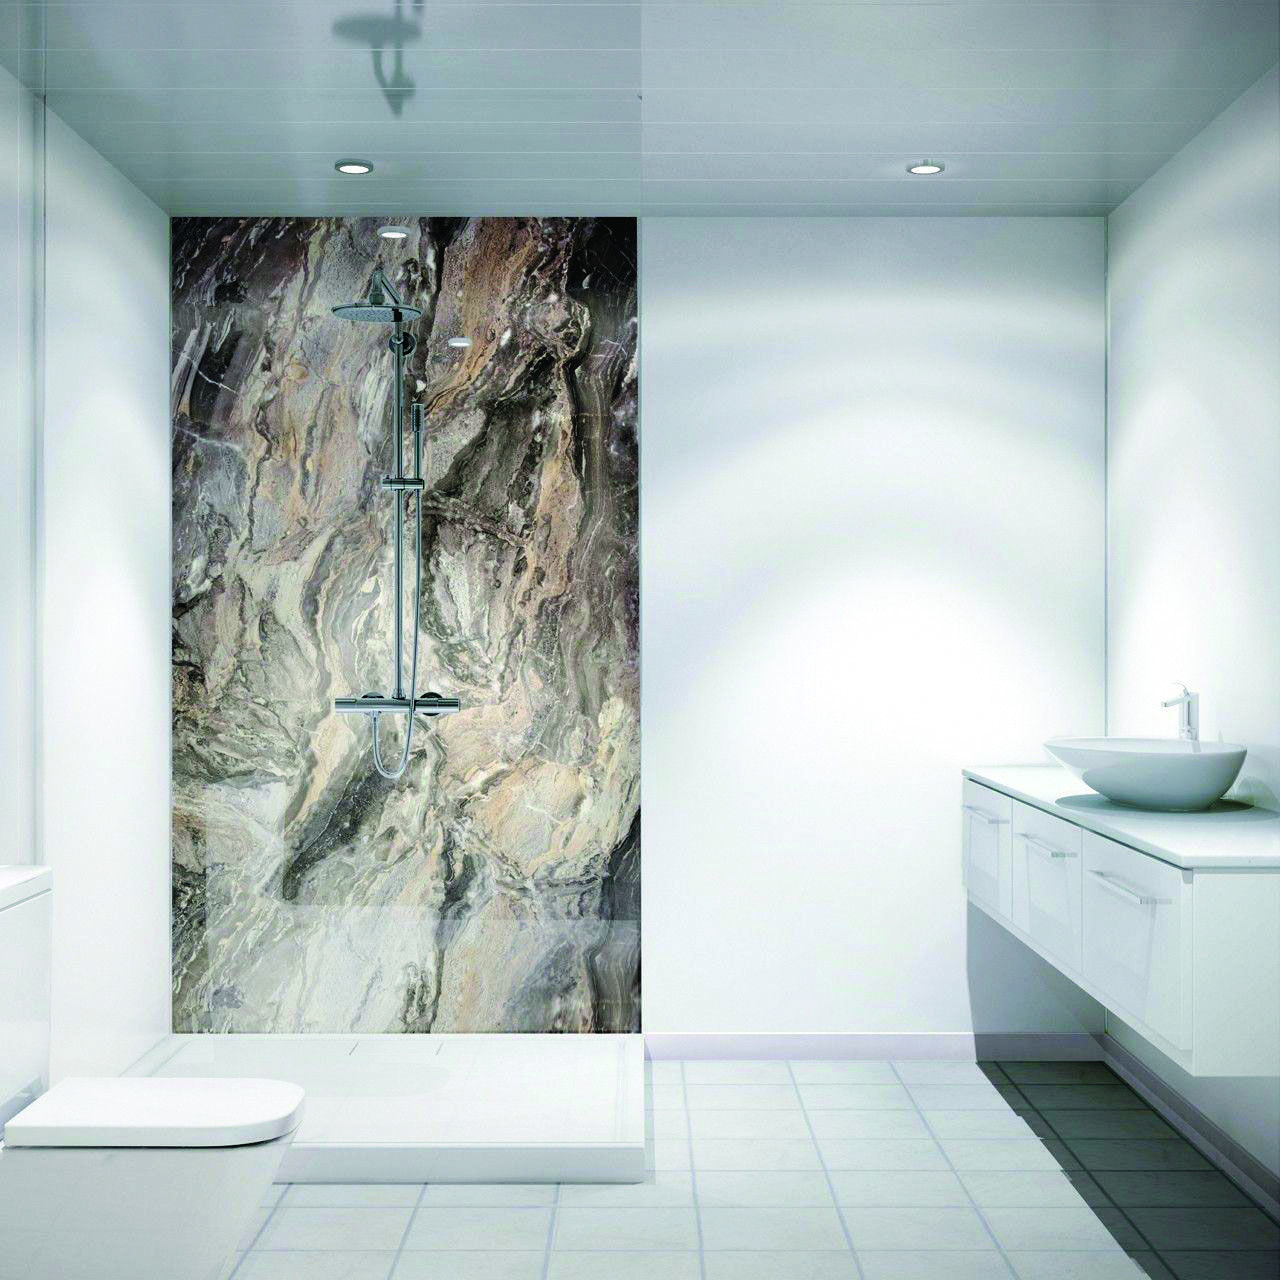 Best Shower Wall Panels Homebase One And Only Dovahome Com Showerwallpanelsmasters Bathroom Wall Panels Waterproof Wall Panels Shower Wall Panels